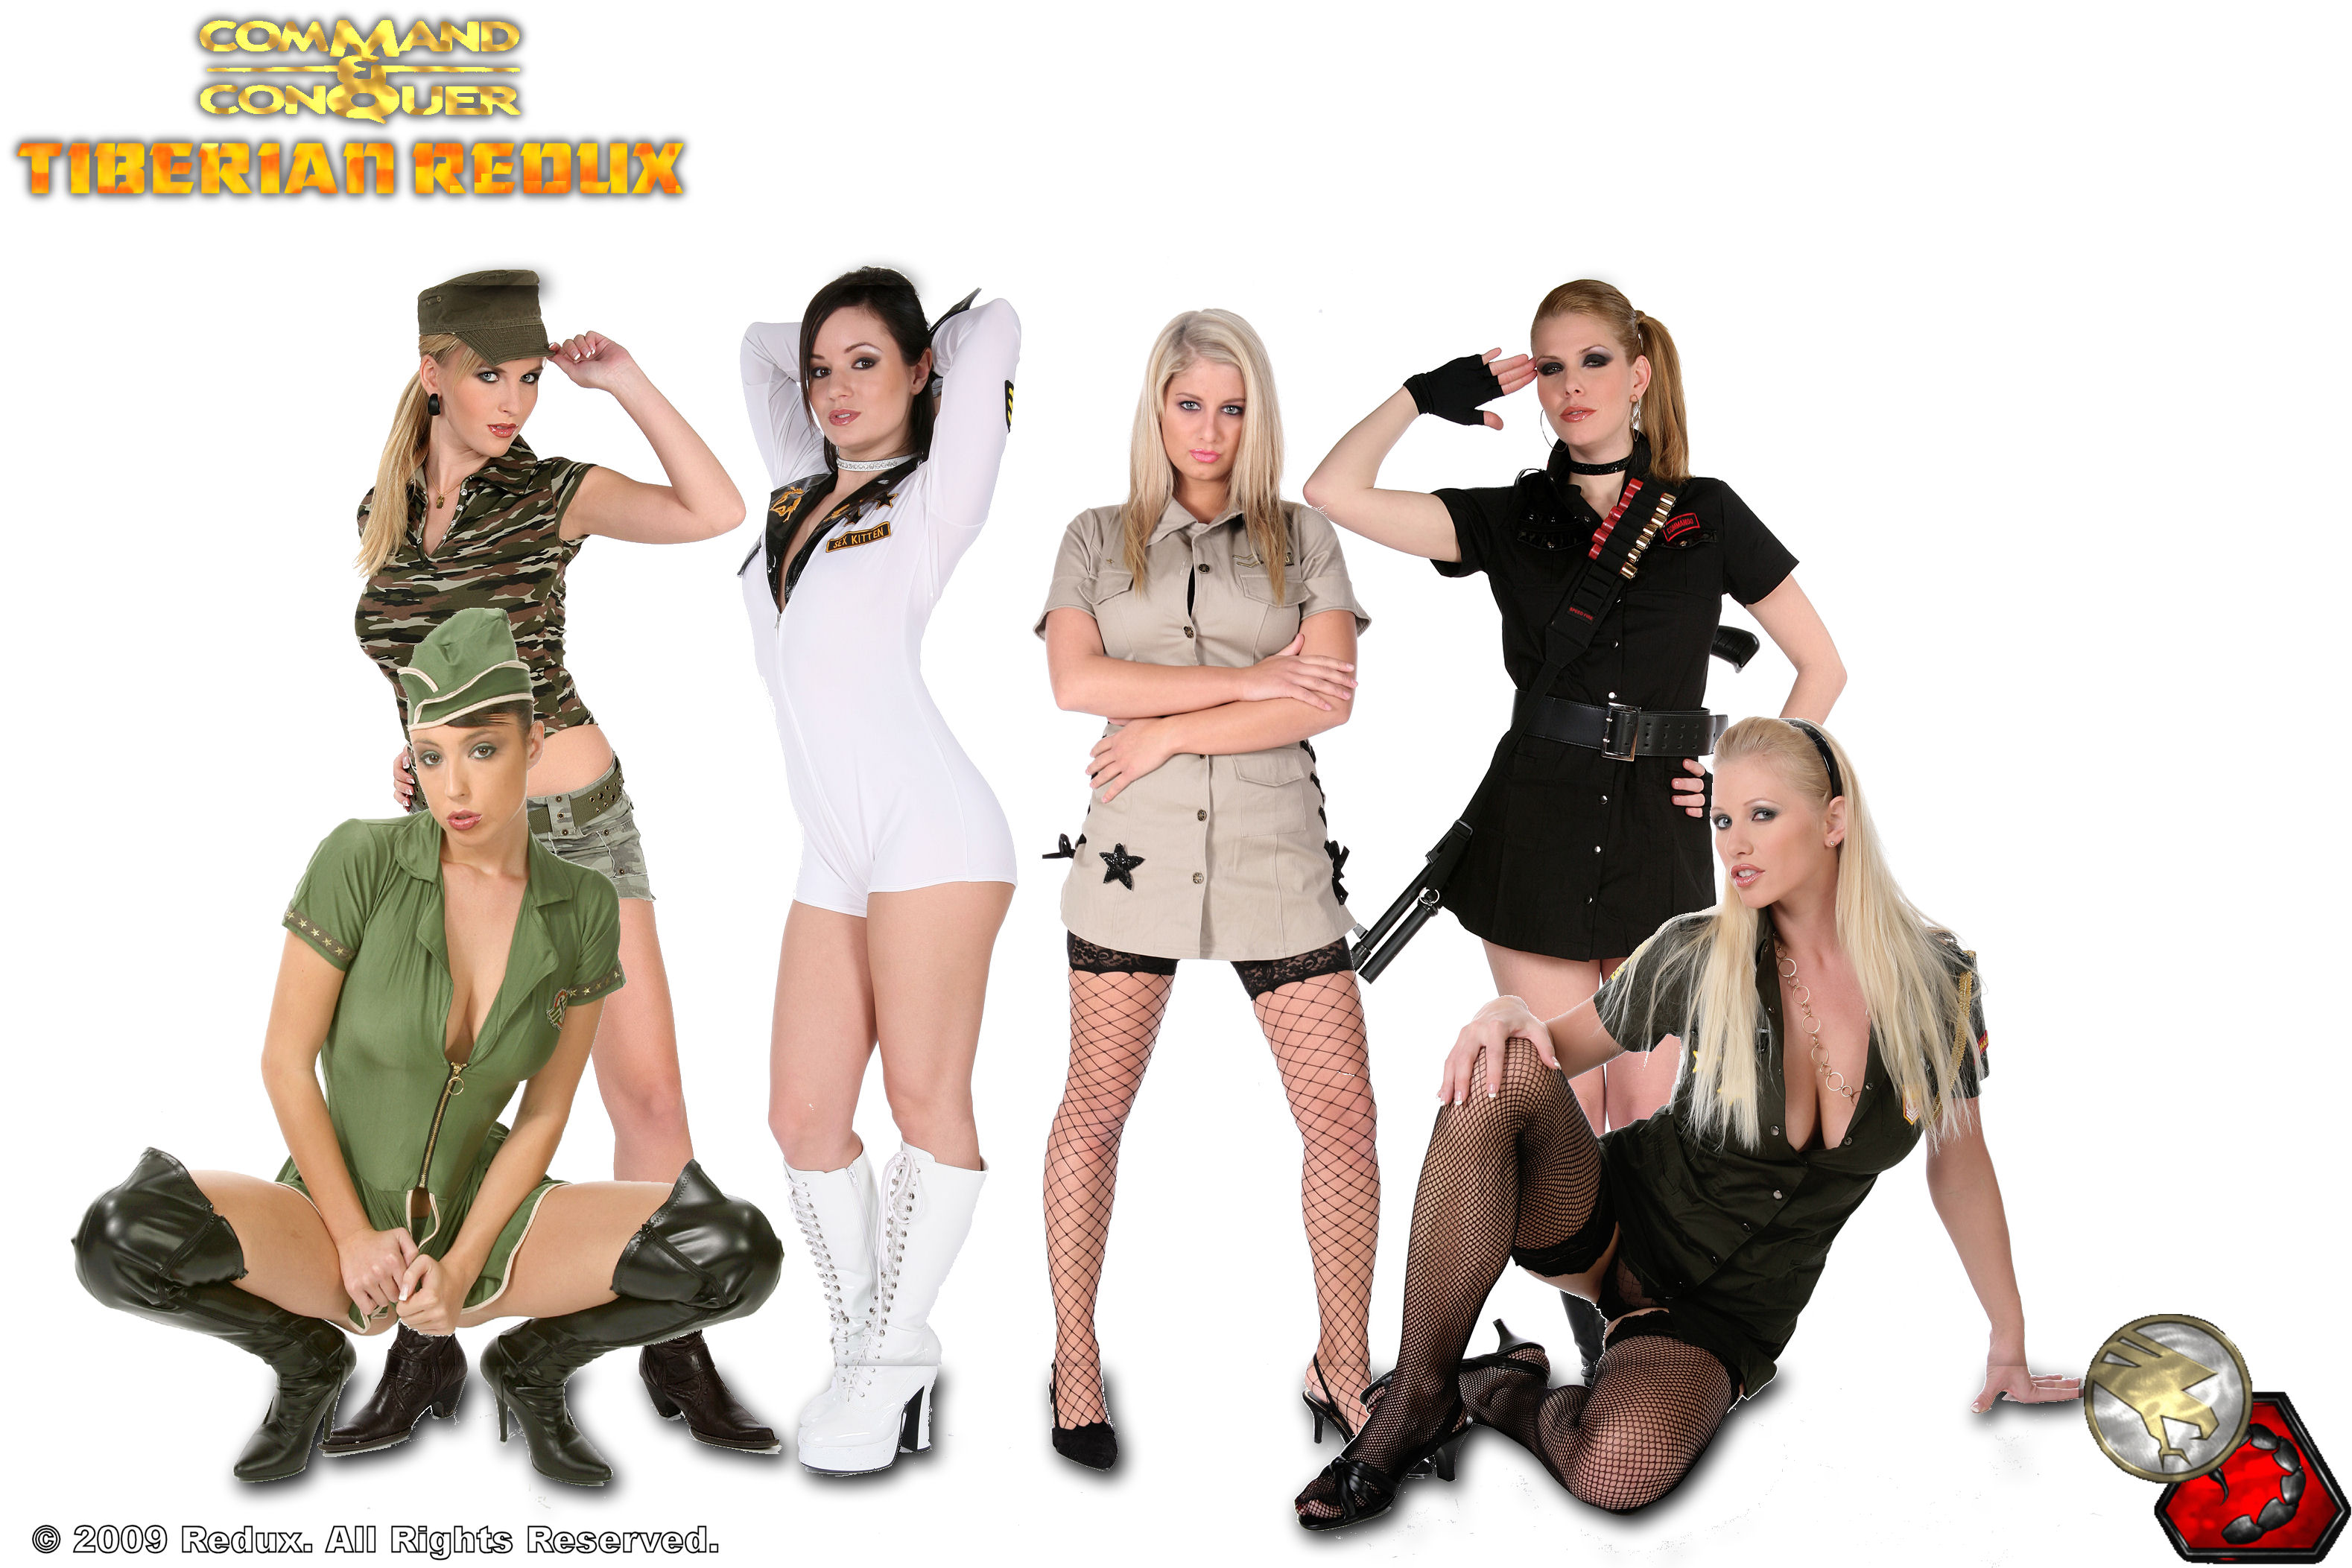 Girls From Command & Conquer Tiberian Redux image - C&C Paradise ...